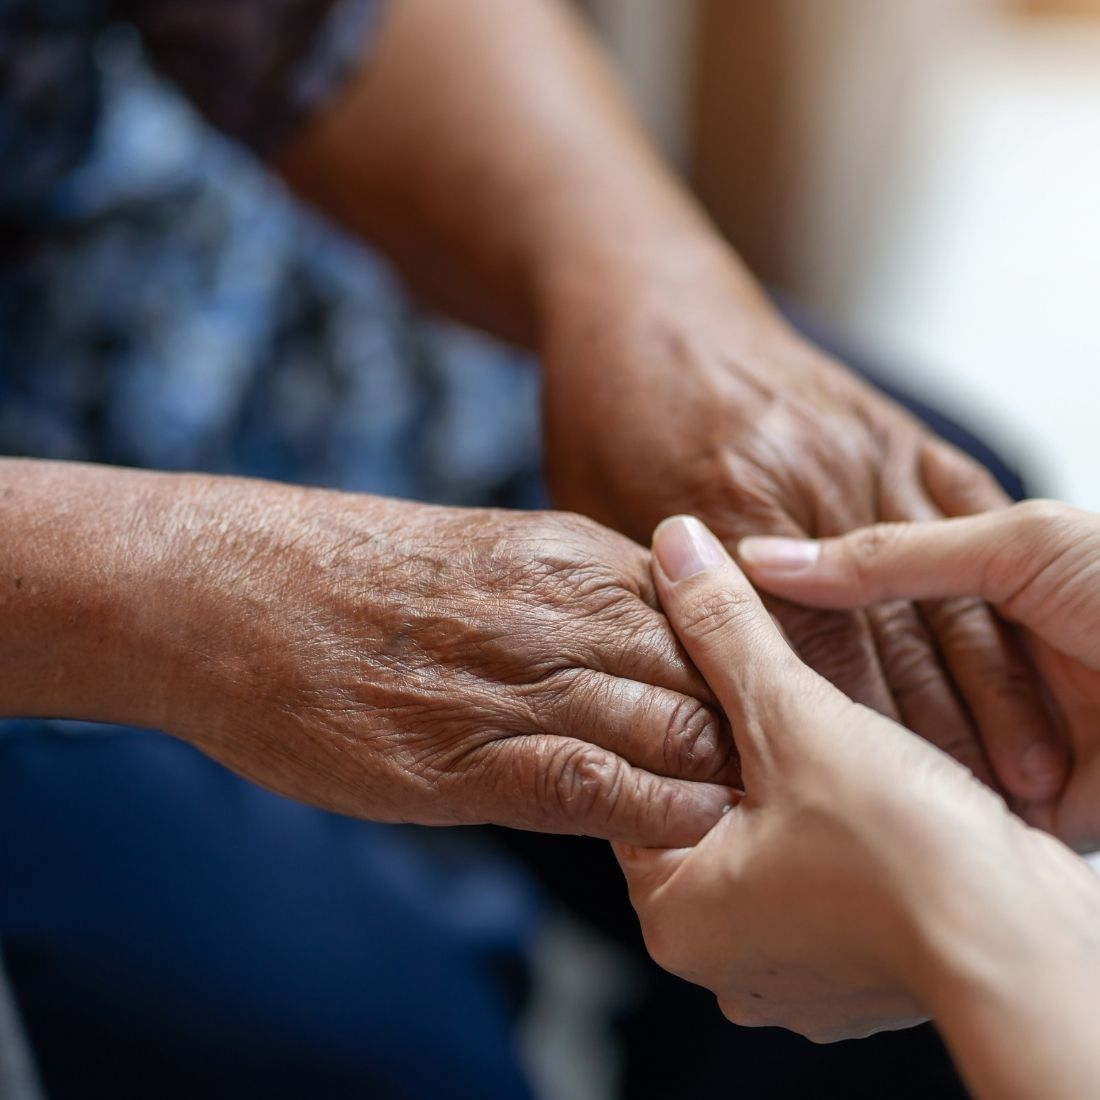 Priority Life Care caregiver holding hands with a resident